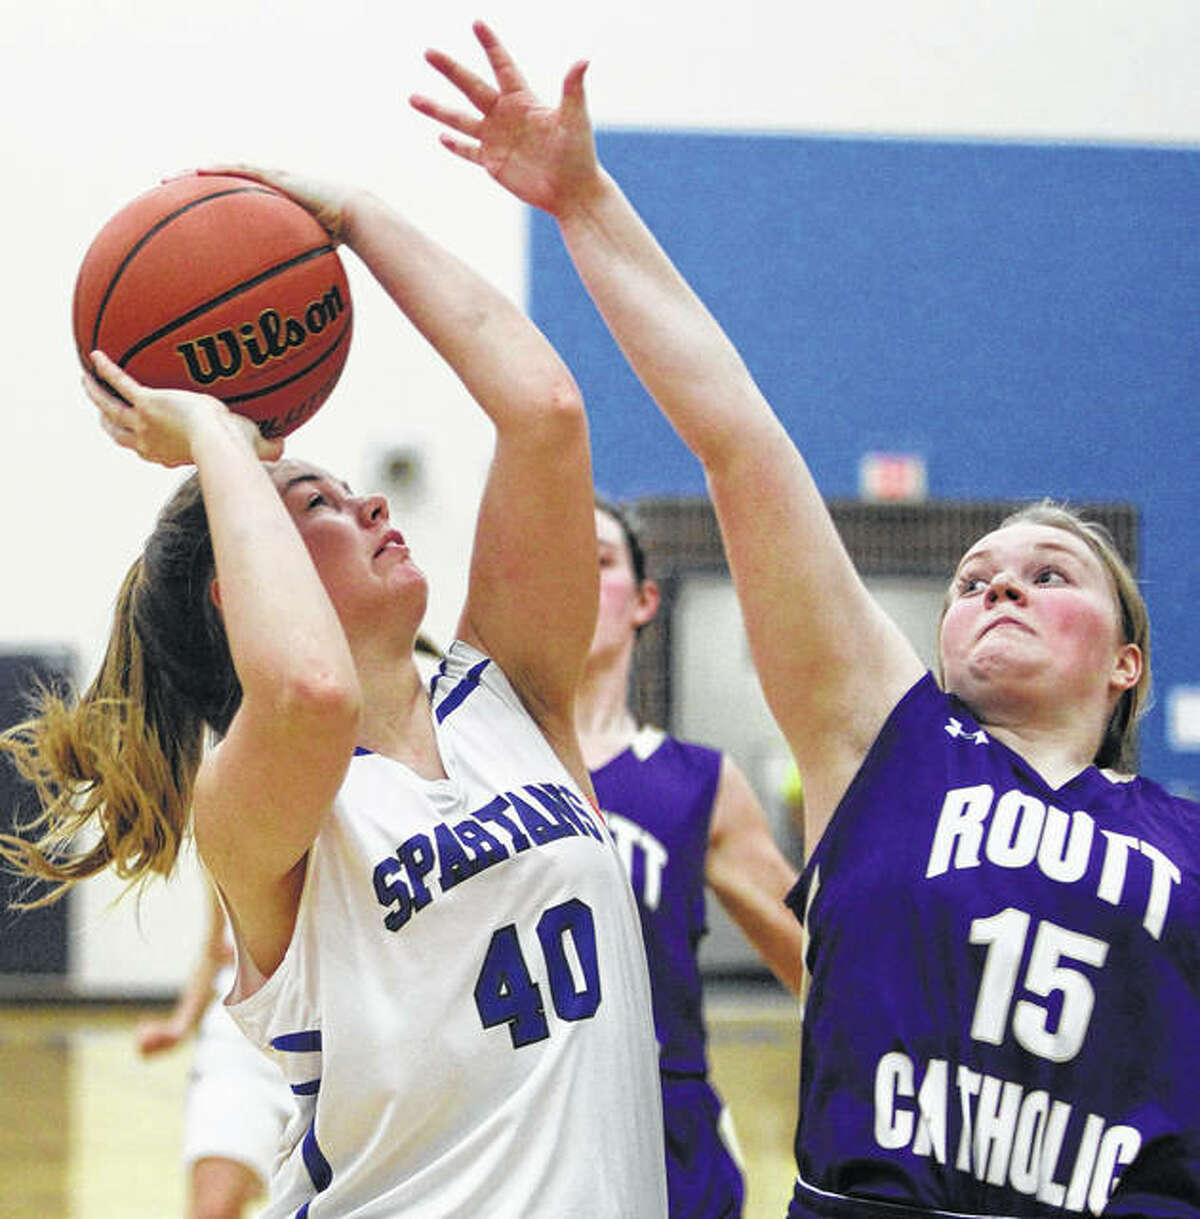 North Greene's Bree Barnard puts up a shot contested by Jacksonville Routt's Mallory Martin (15) defends during WIVC girls basketball game Thursday night in White Hall. Routt won to push its record to 14-2.